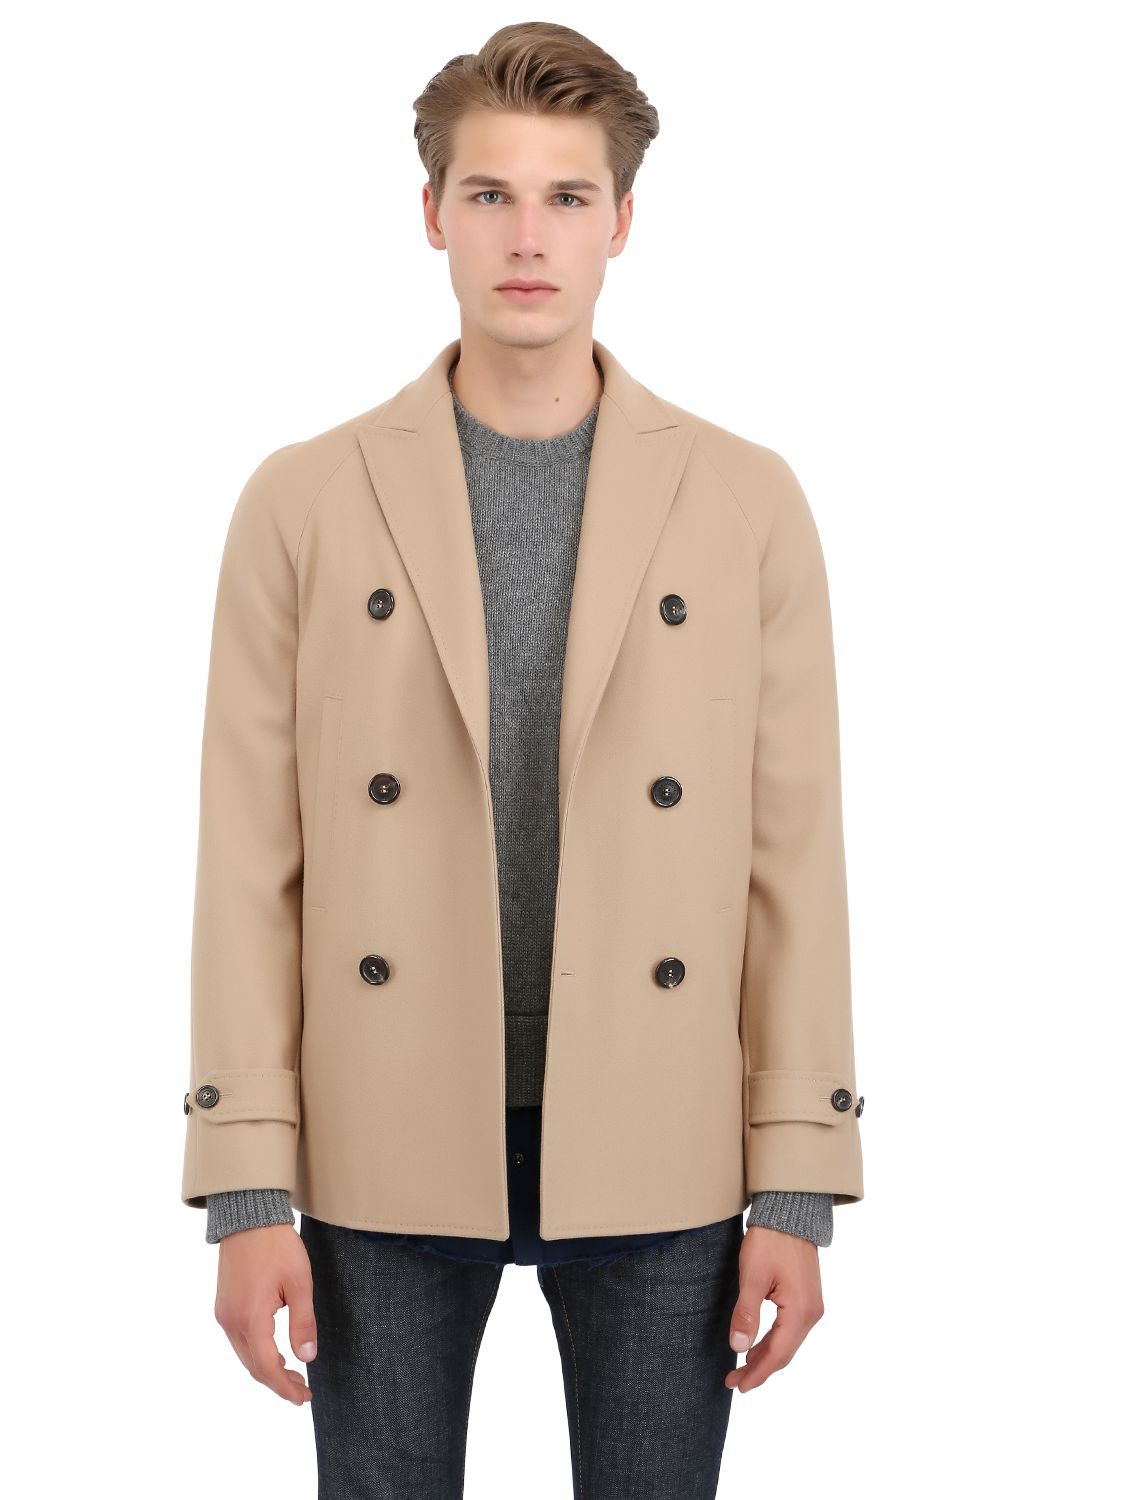 There's always room for a sophisticated pea coat or parka as well—both are traditional looks that have never gone out of style. Style Meets Function Of course, men's jackets aren't just about looking good (although that is an added benefit!).